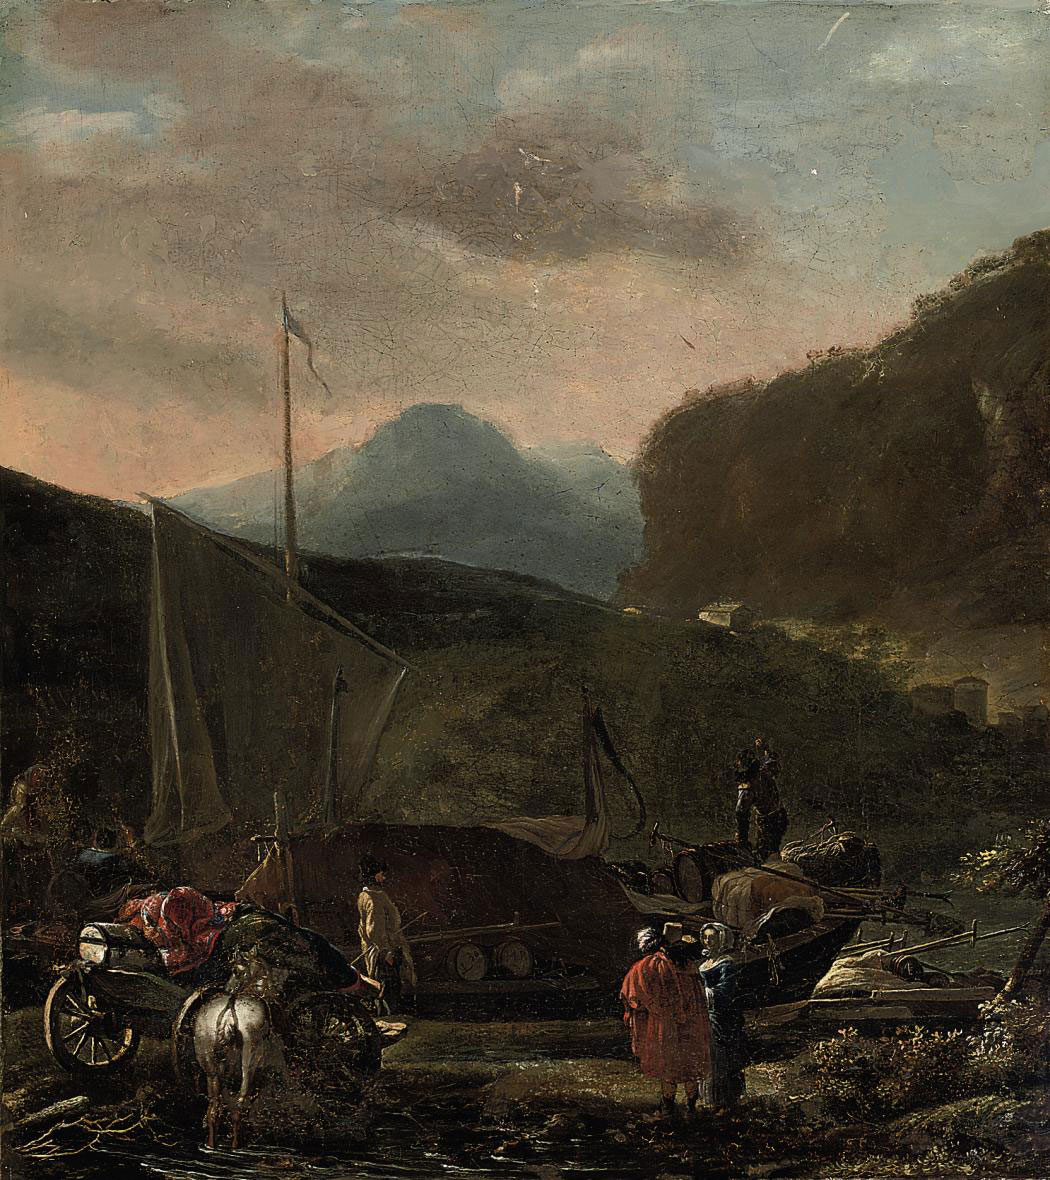 A river landscape with a ship carrying cargo, travellers with their horse and cart on a bank